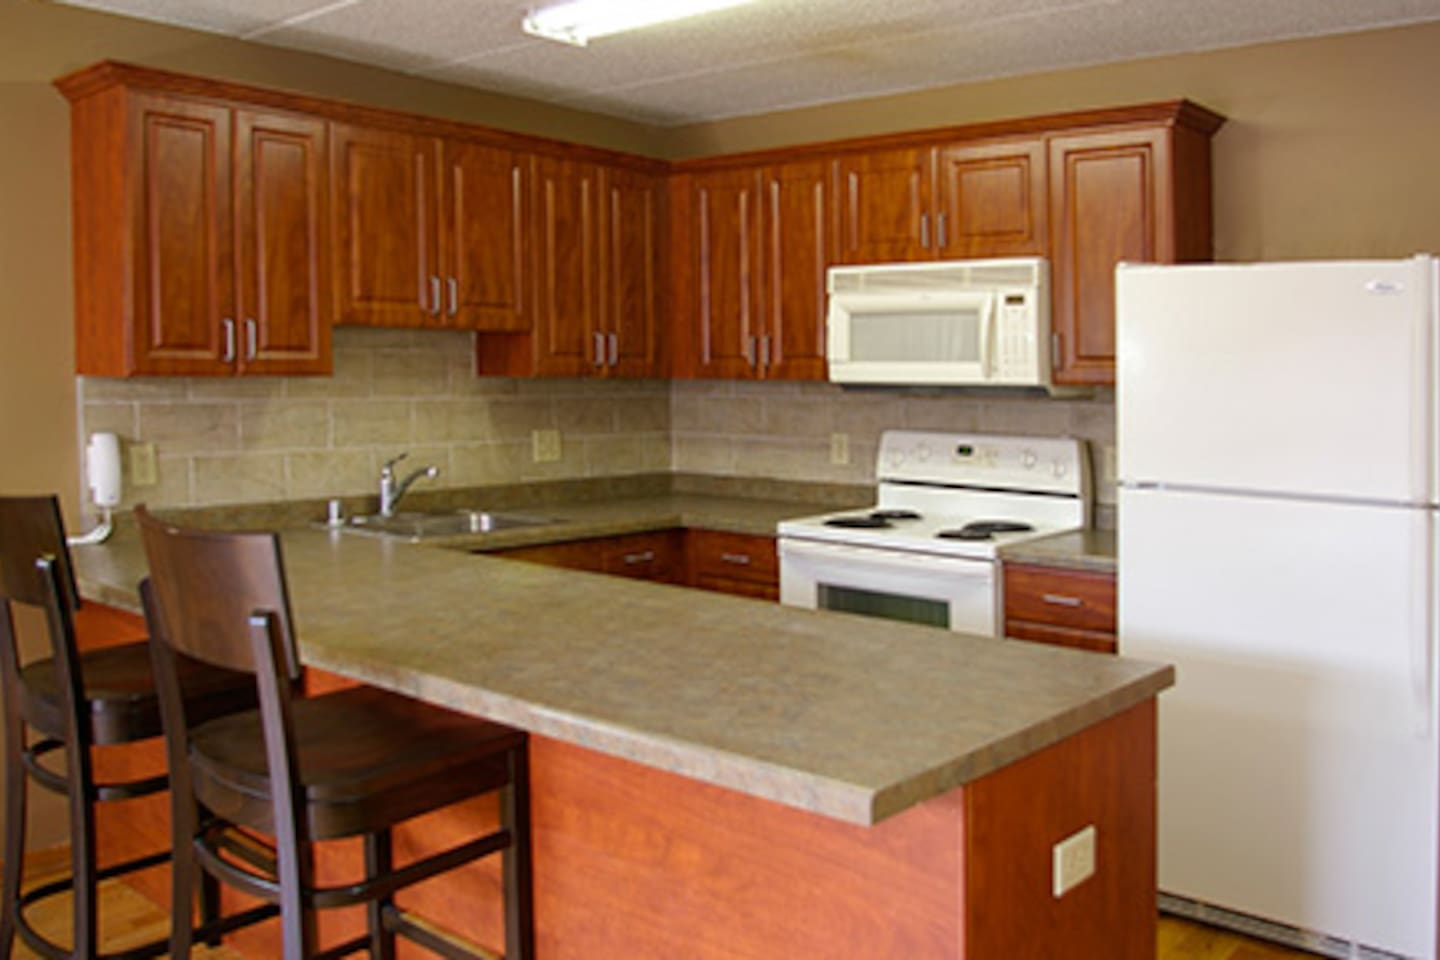 Utilities were redone over the summer! Now stainless steel appliances